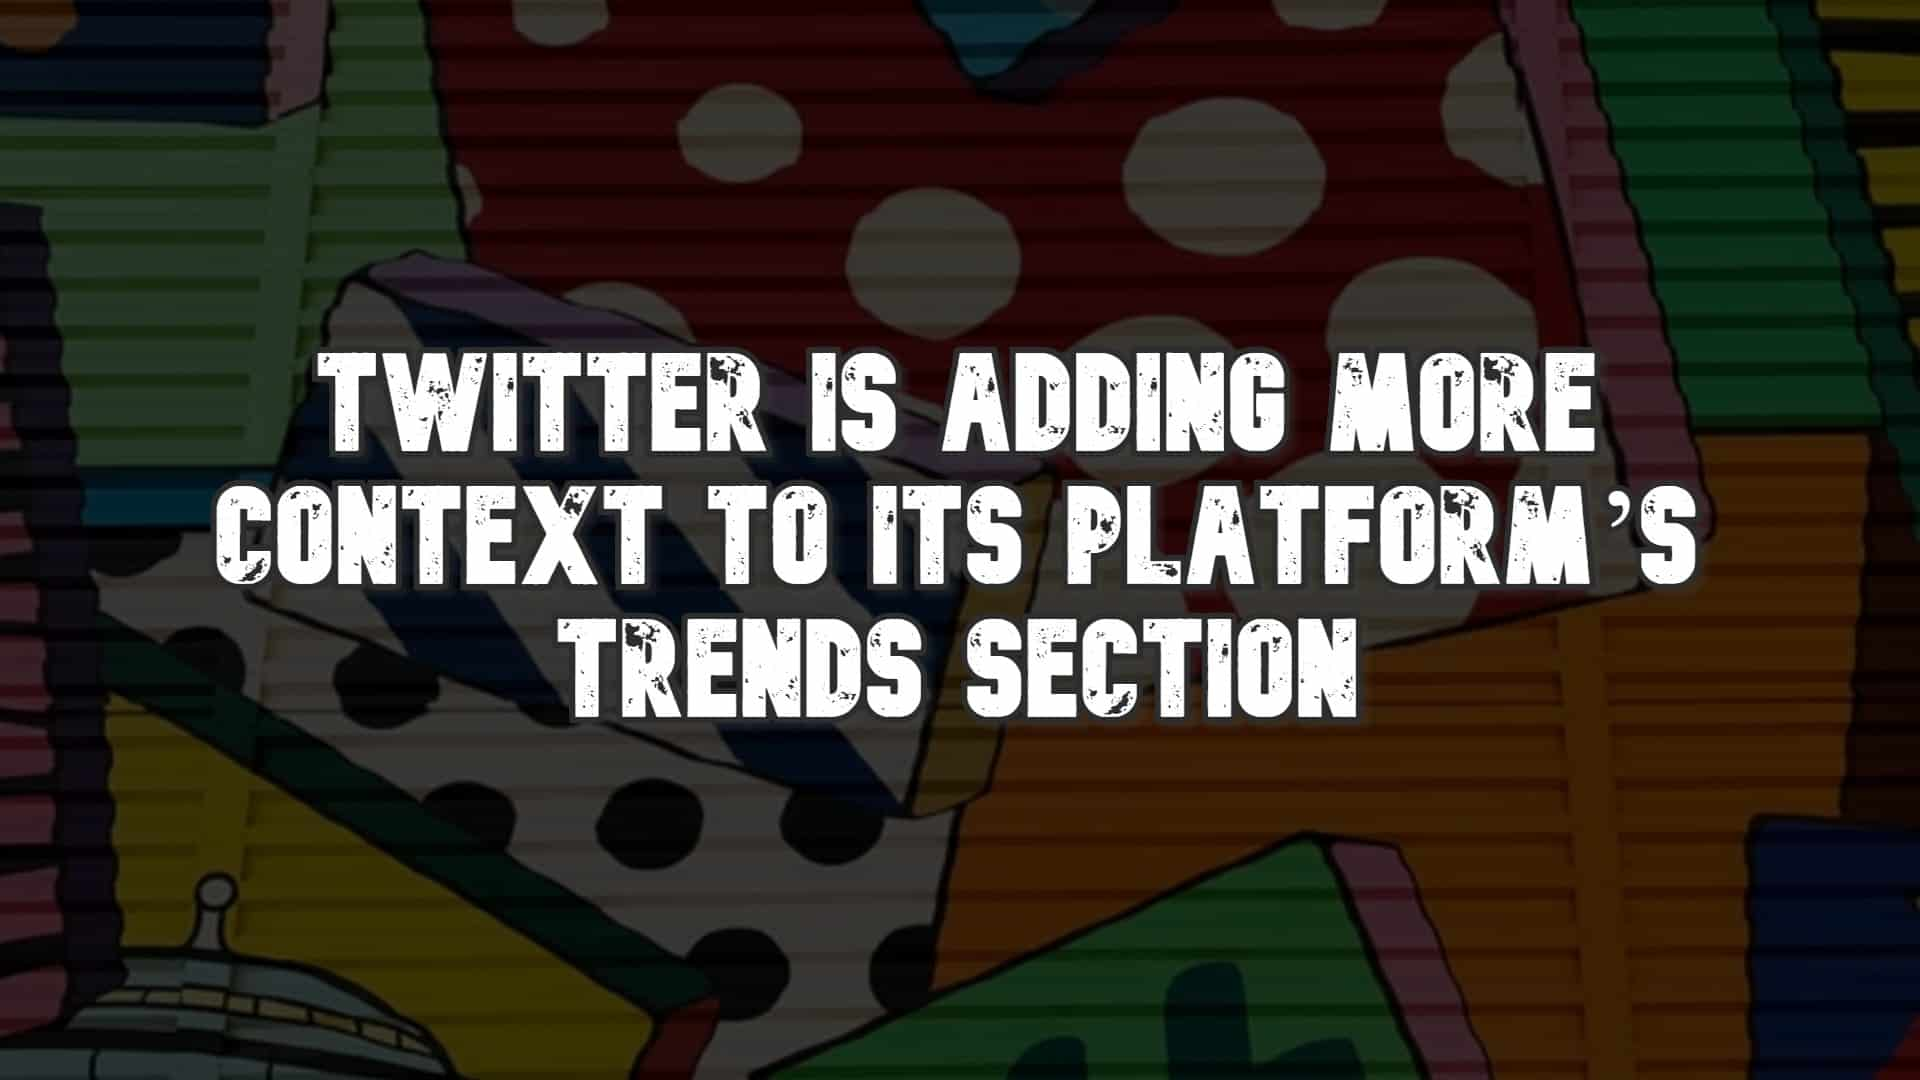 Twitter is Adding More Context to its Platform's Trends Section